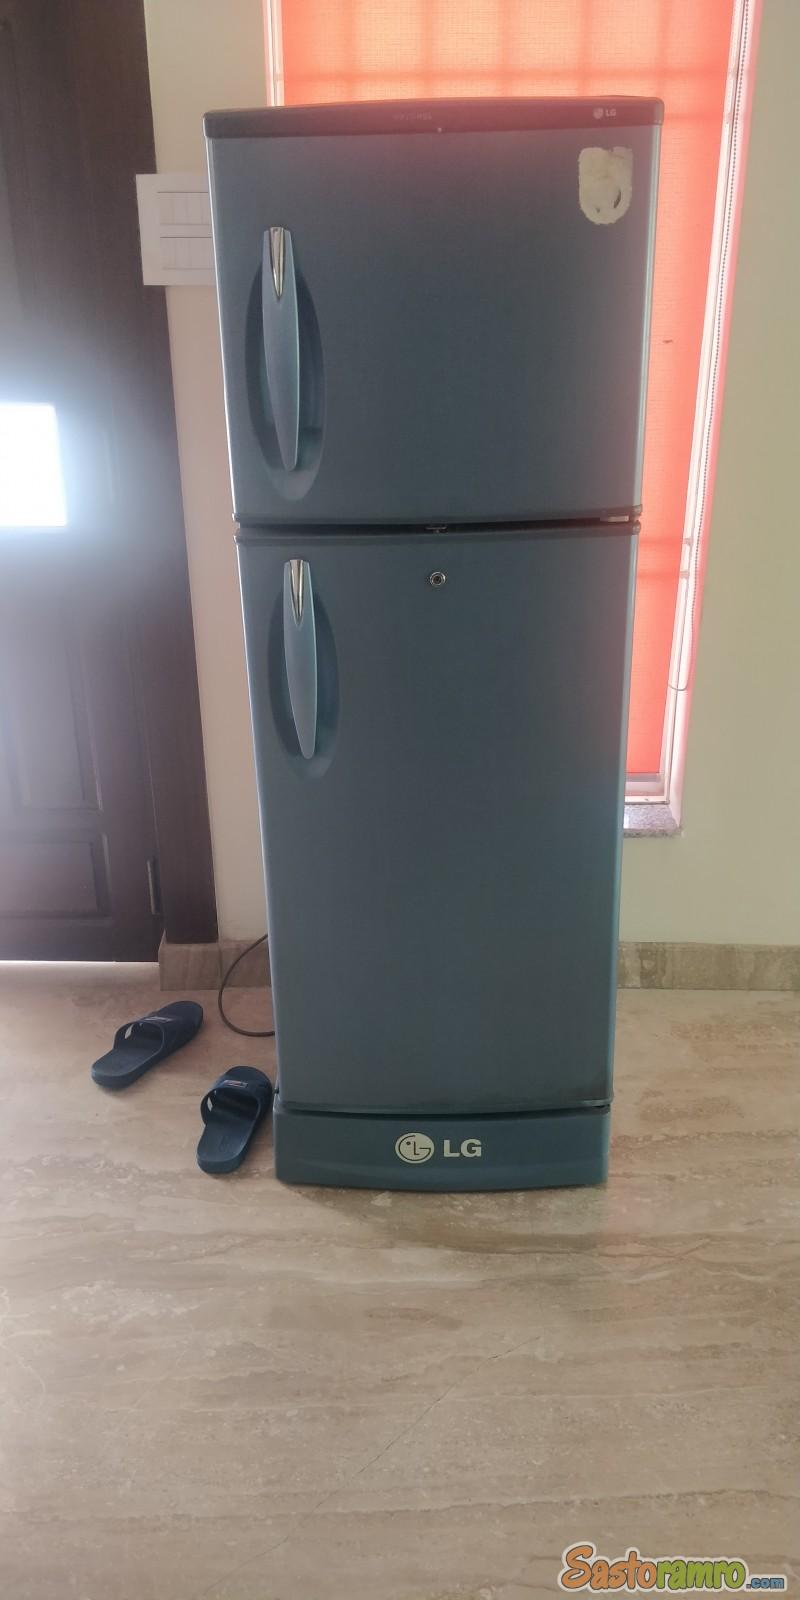 I wanna sell my refrigerator. It is in good condition and works smoothly